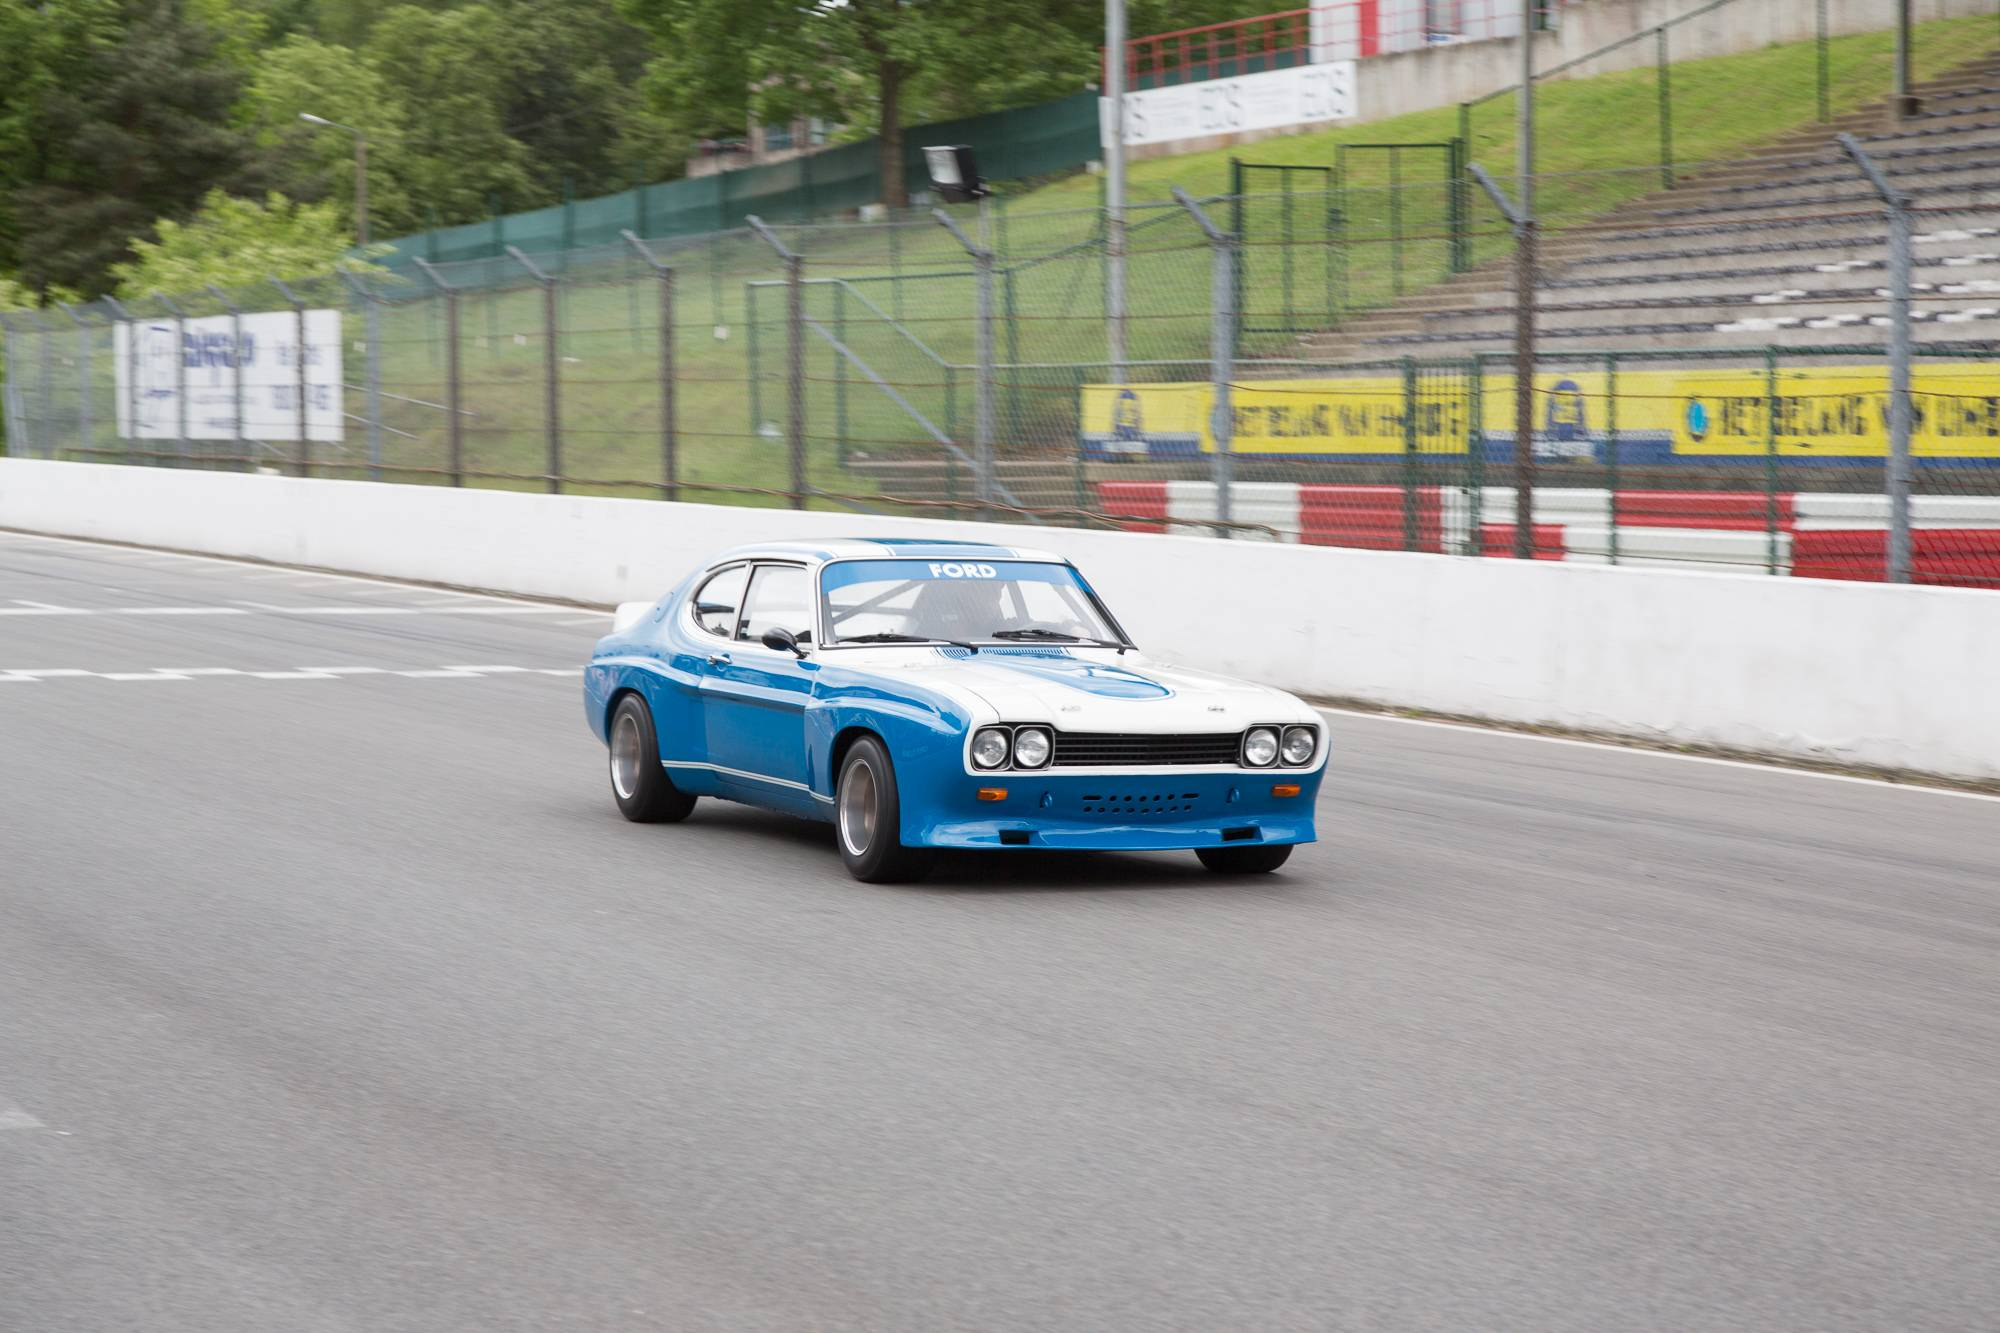 Ford Circuit Zolder